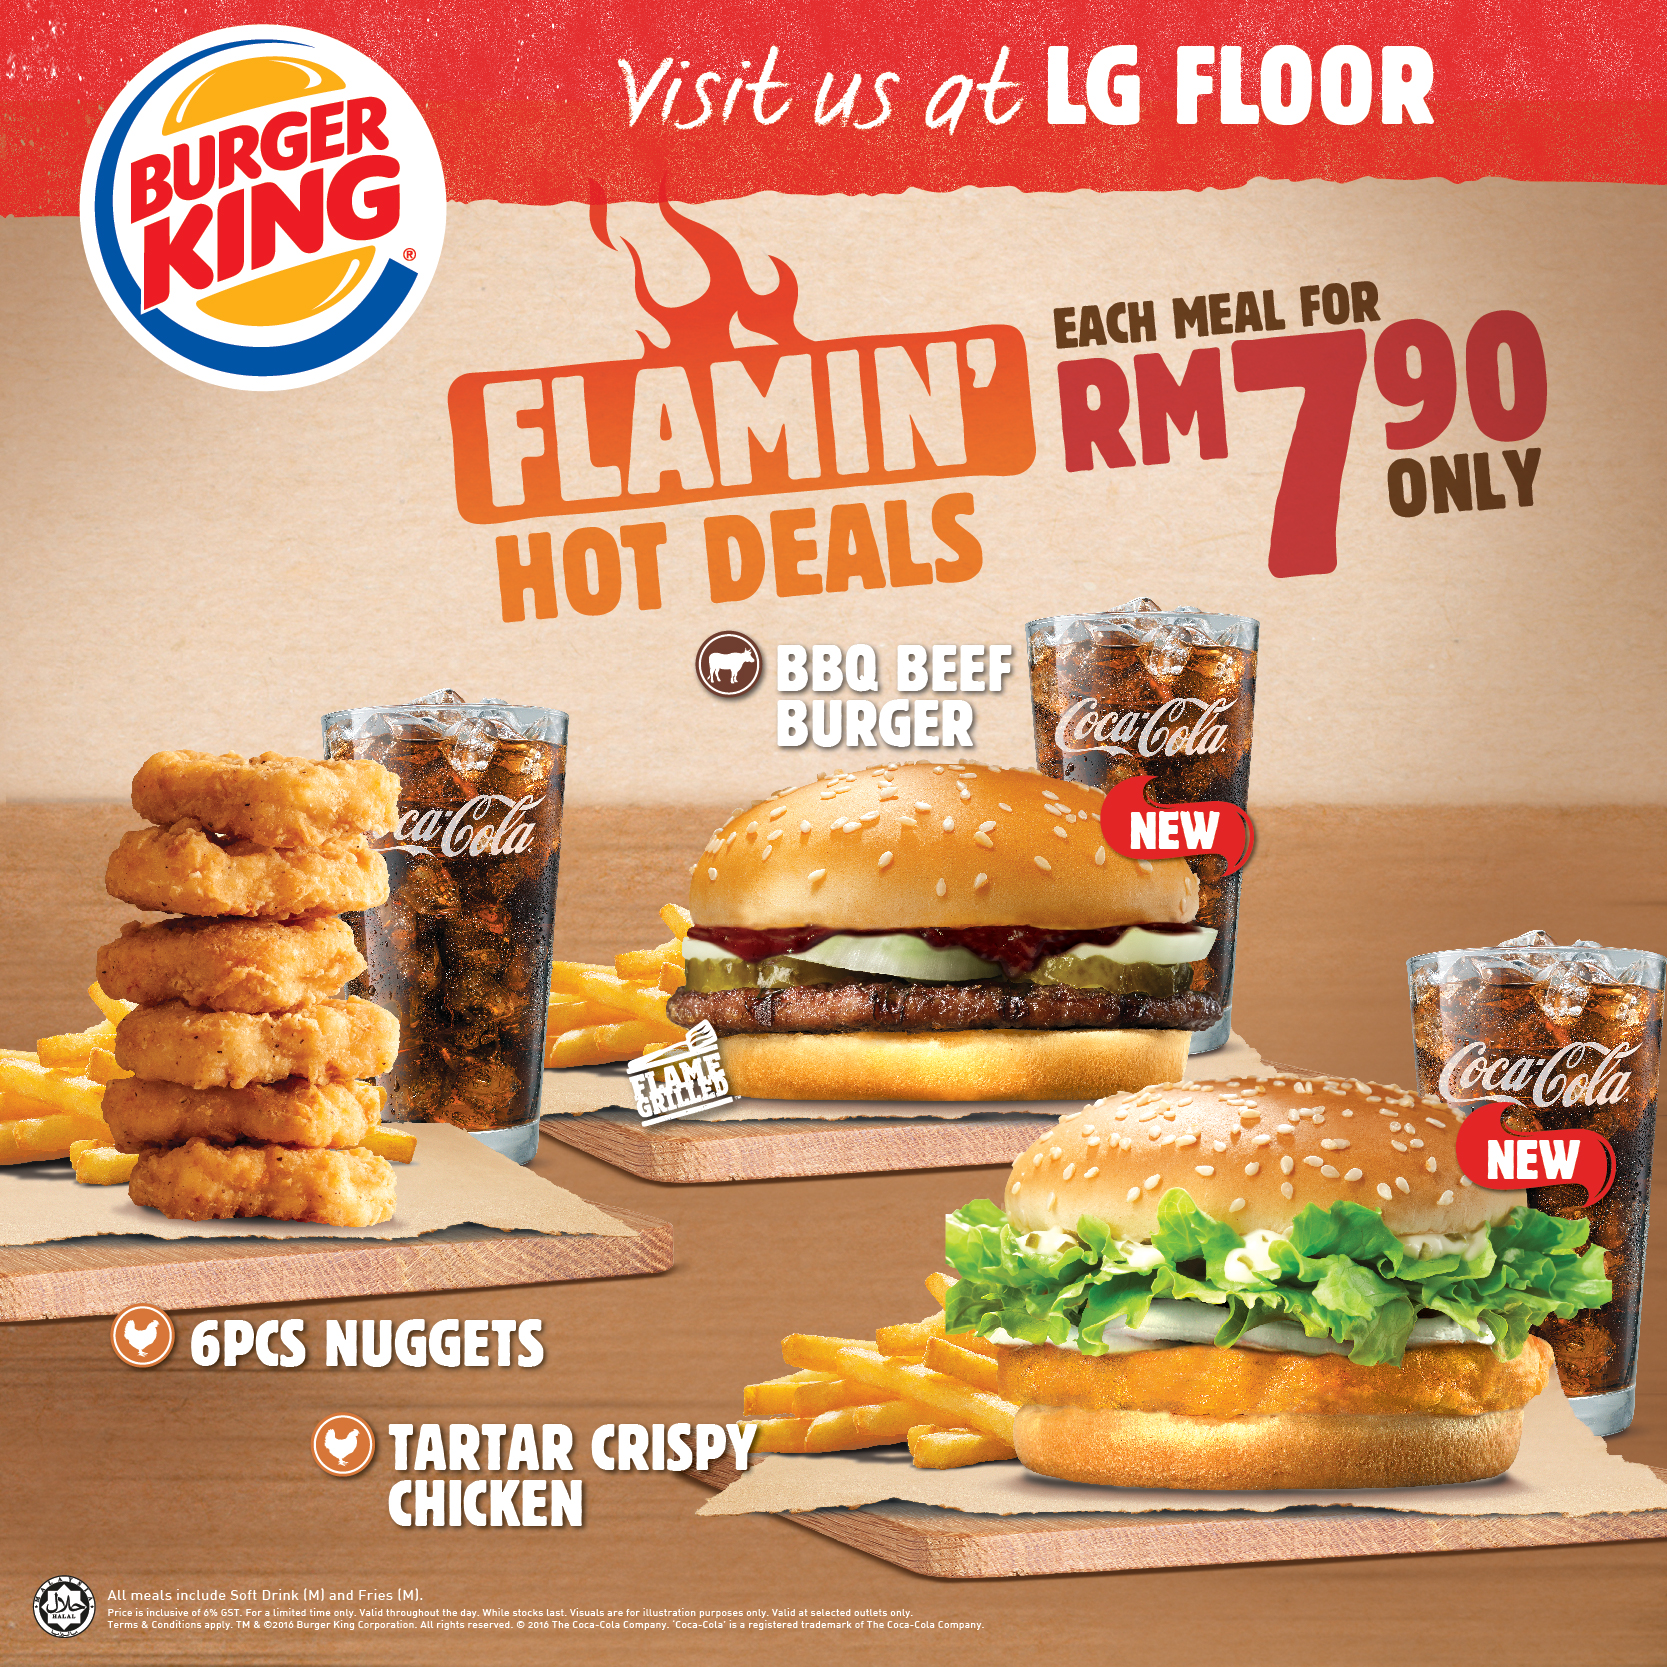 New Flamin' Hot Deals